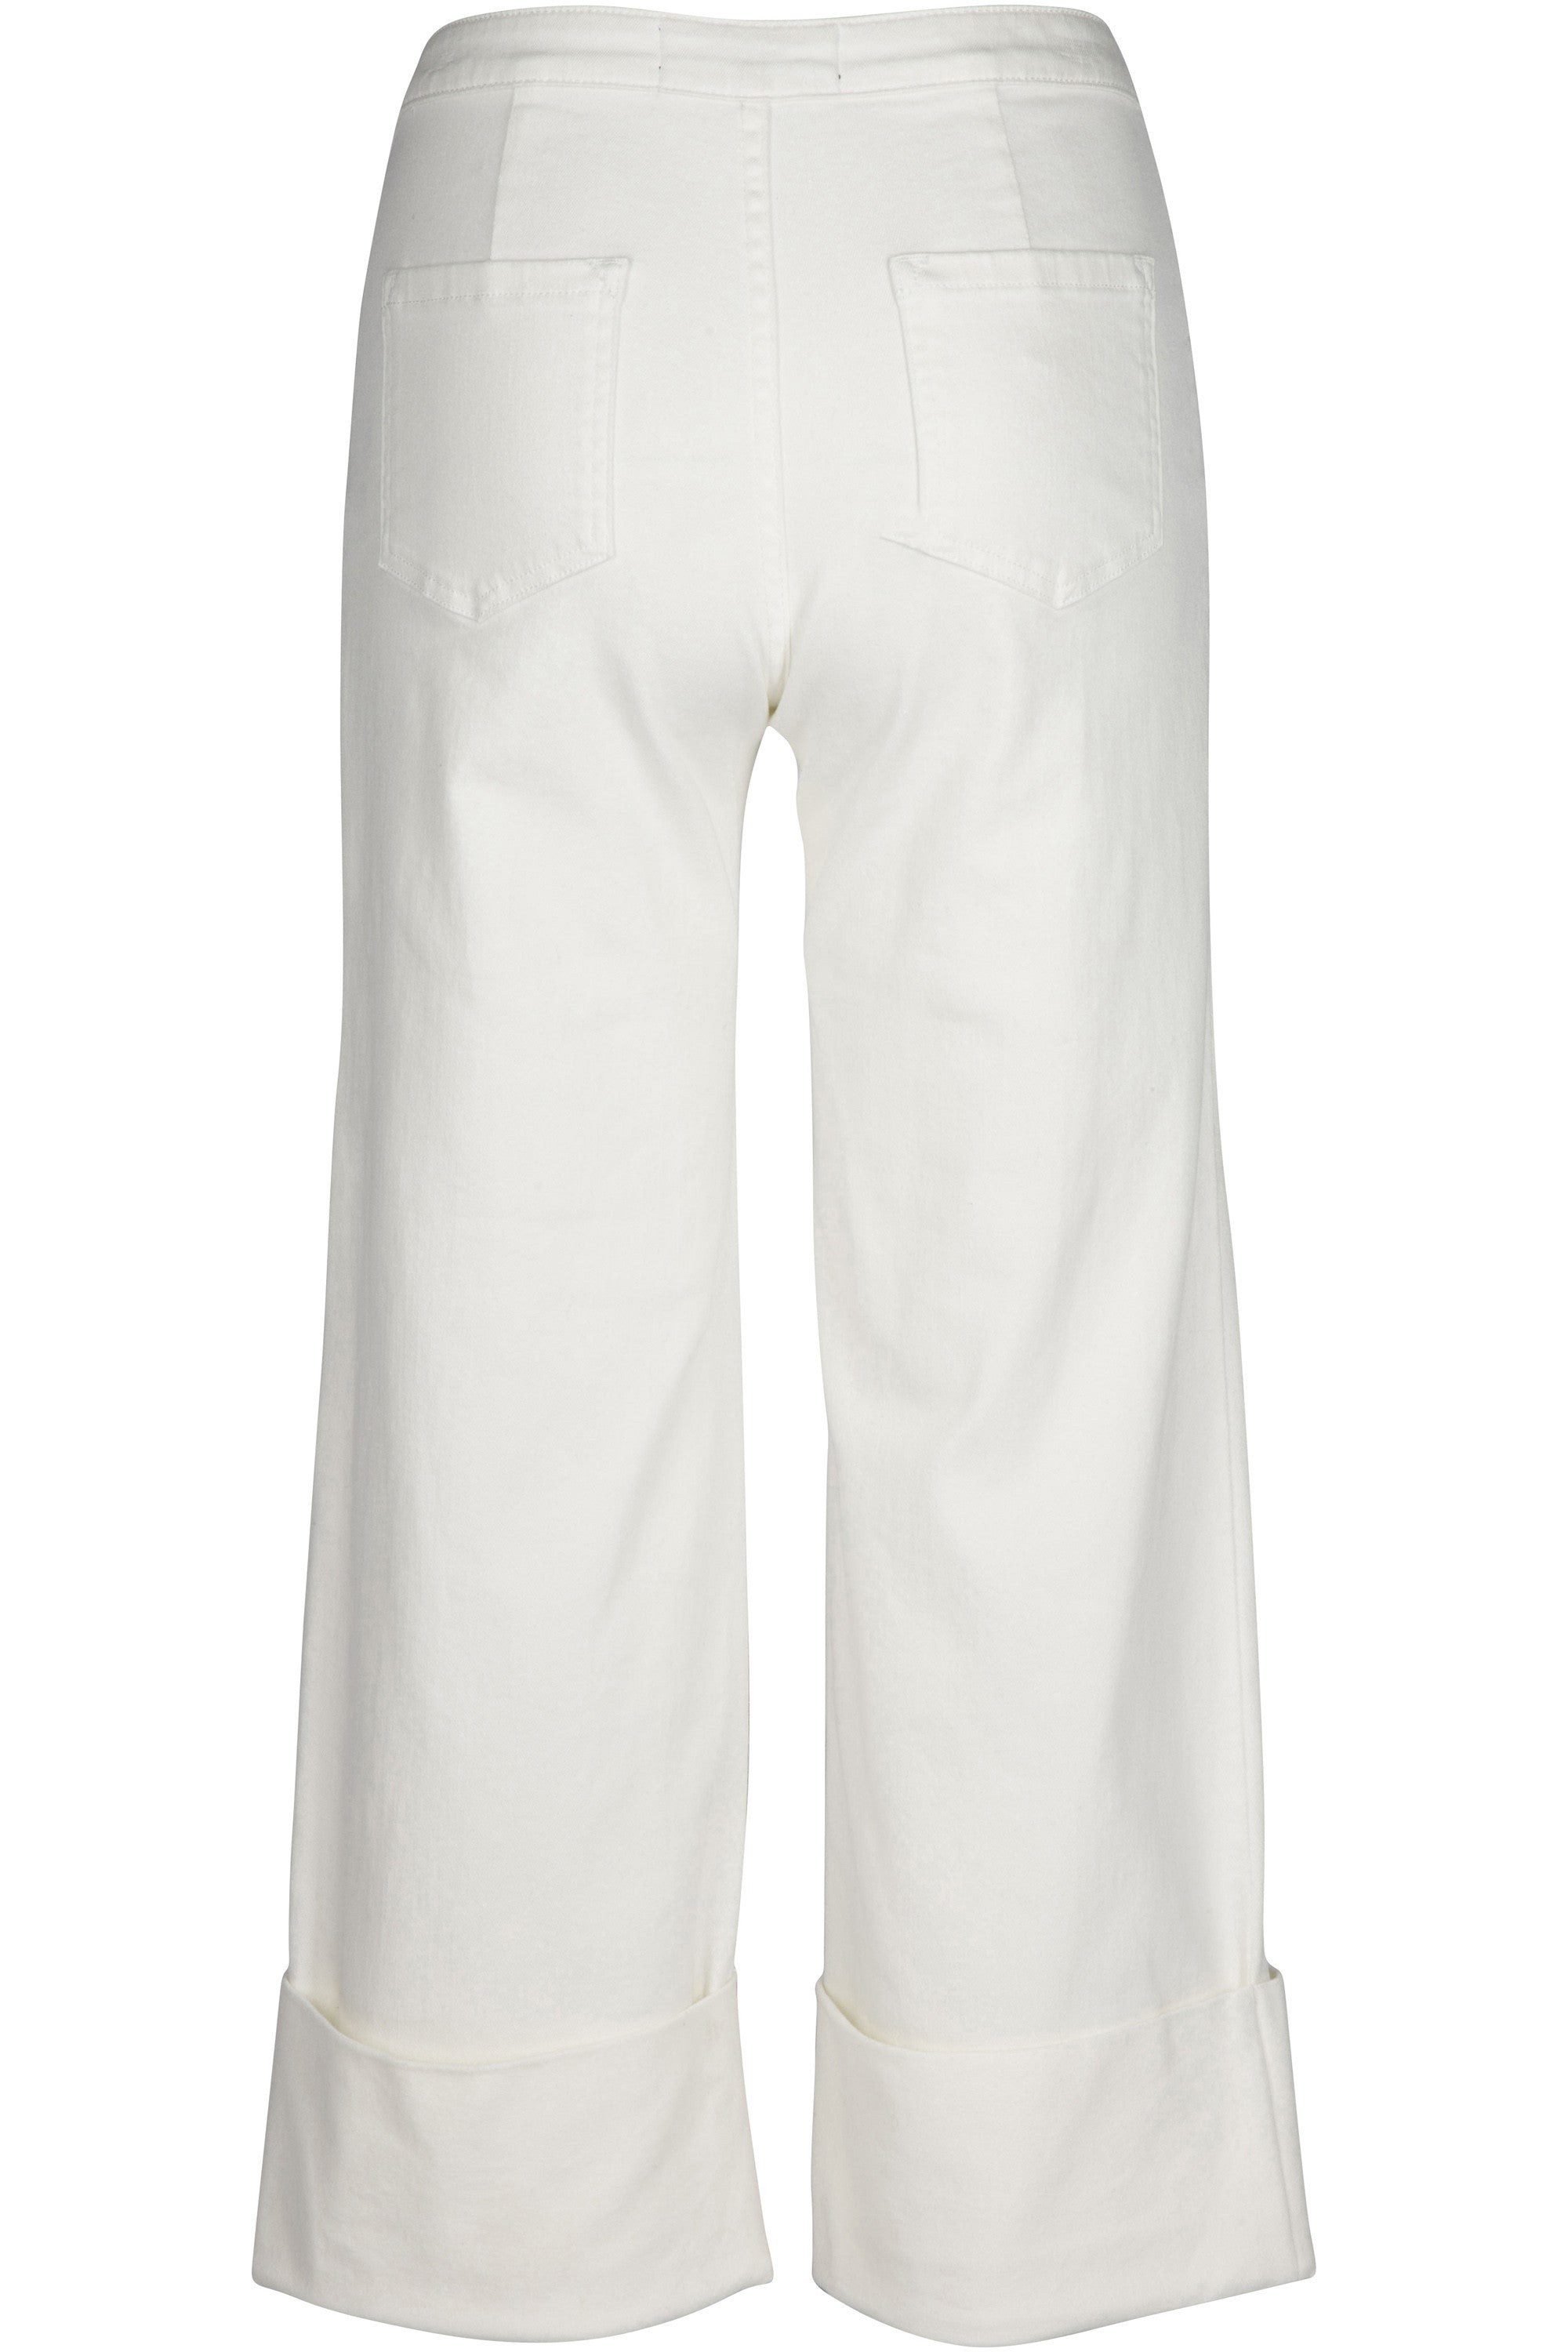 WHITE DENIM CUFF JEAN PANTS by KENDALL + KYLIE